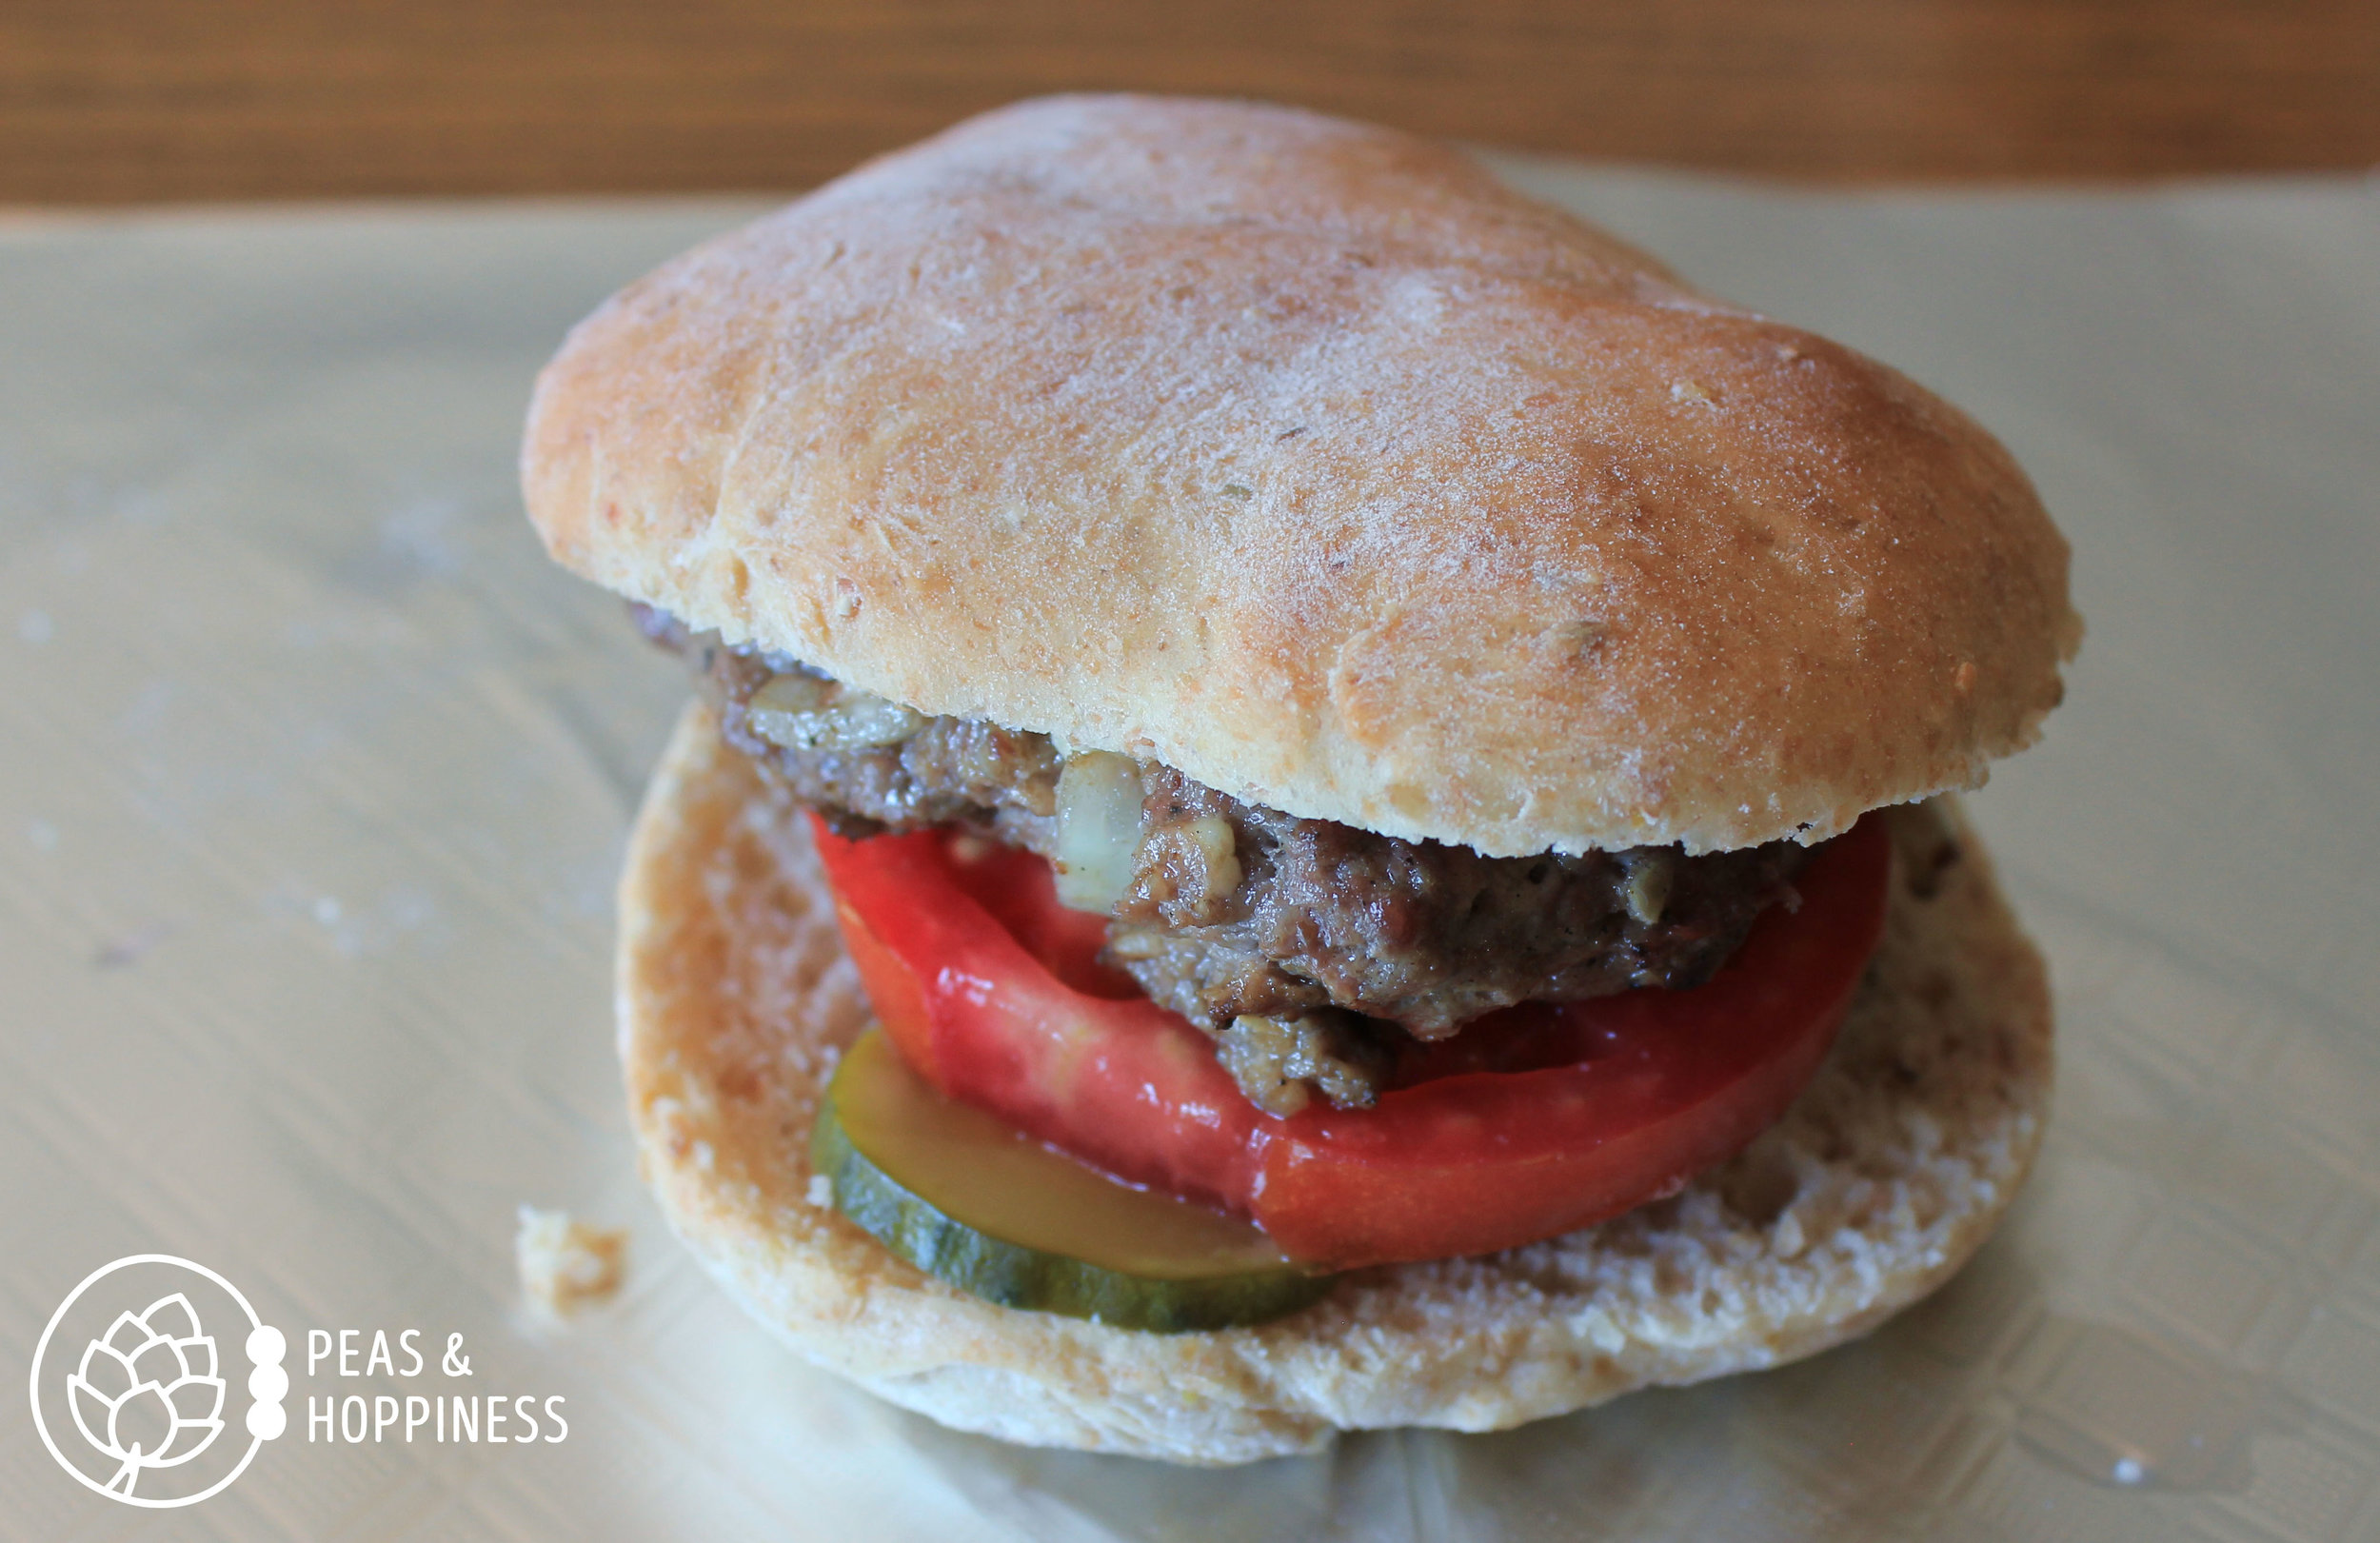 Homemade bun, hand-crafted burger. This is farm life at Scheufler Farms.